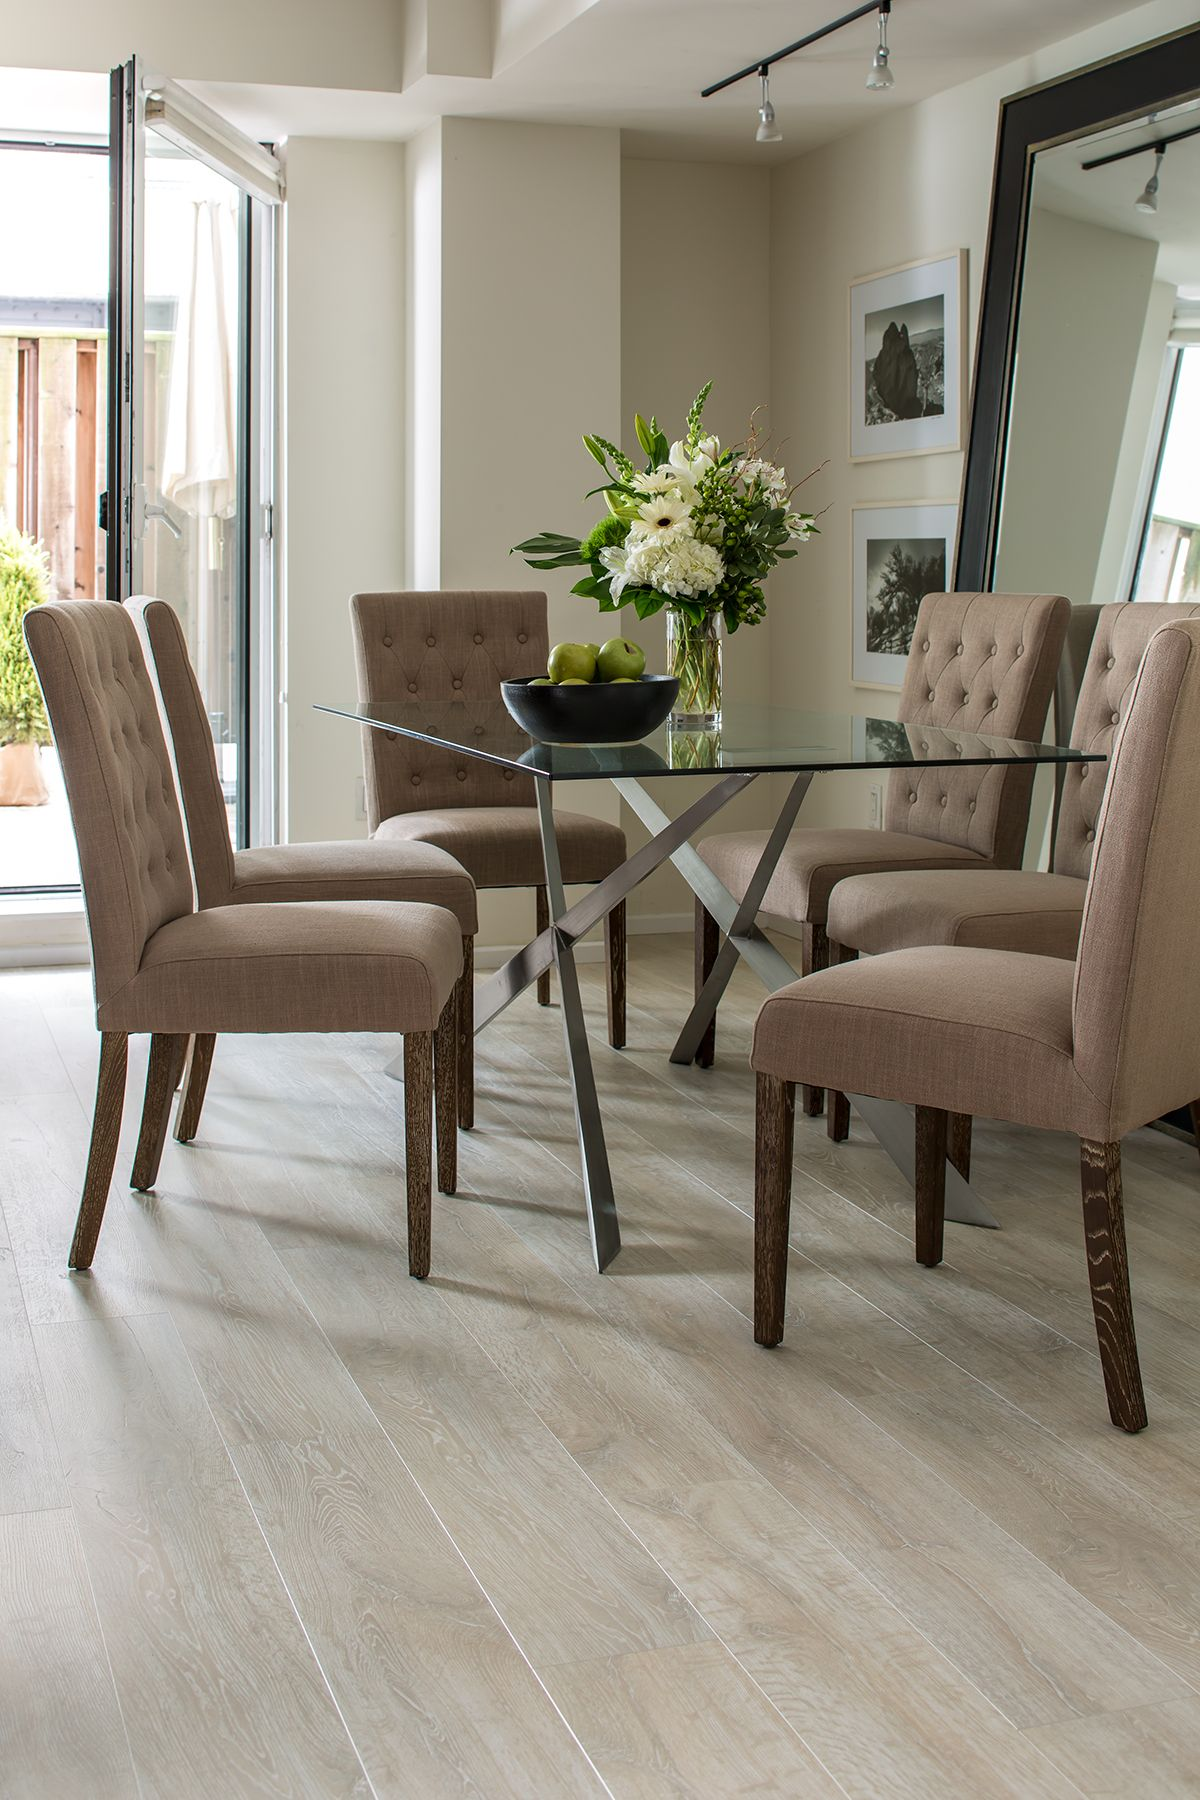 Get Inspired With This Beautiful Neutral Toned Dining Room